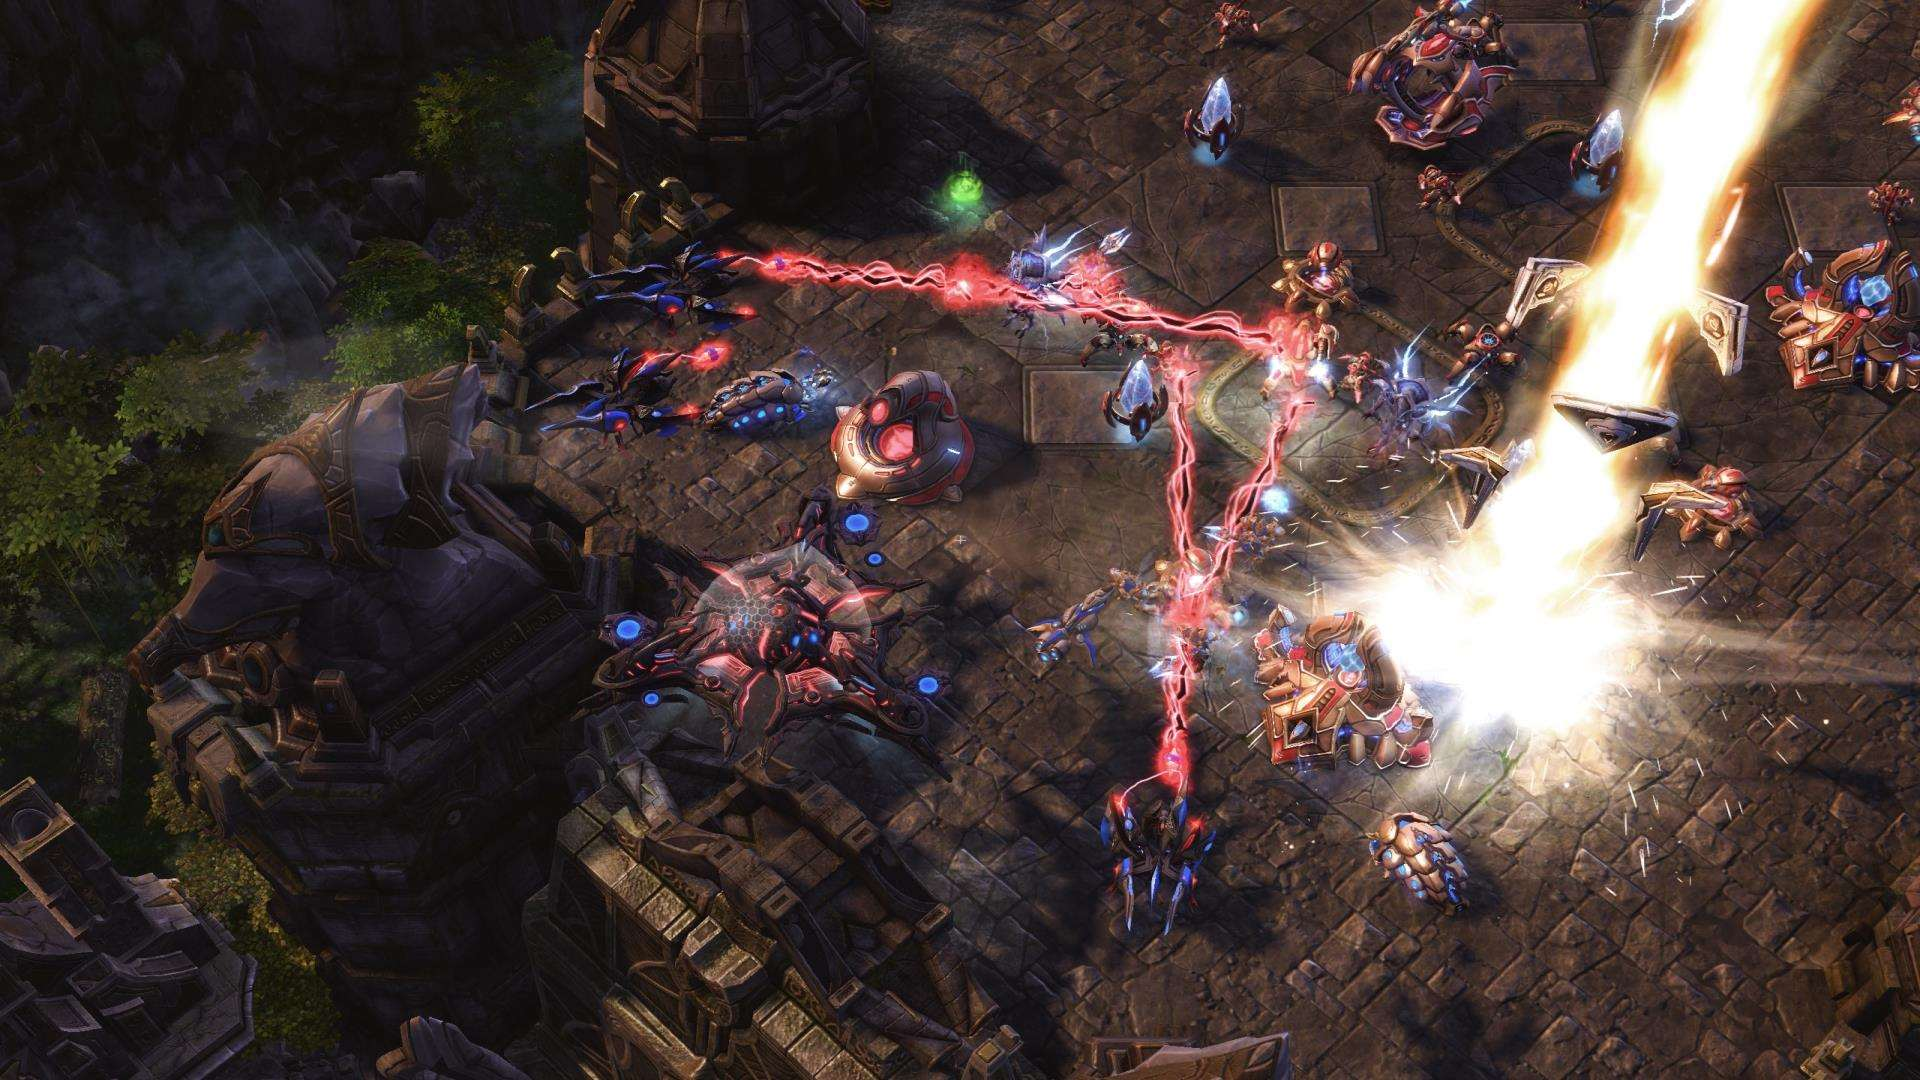 20151117095145_SC2_Legacy_of_the_Void_BlizzCon_01_tga_jpgcopy